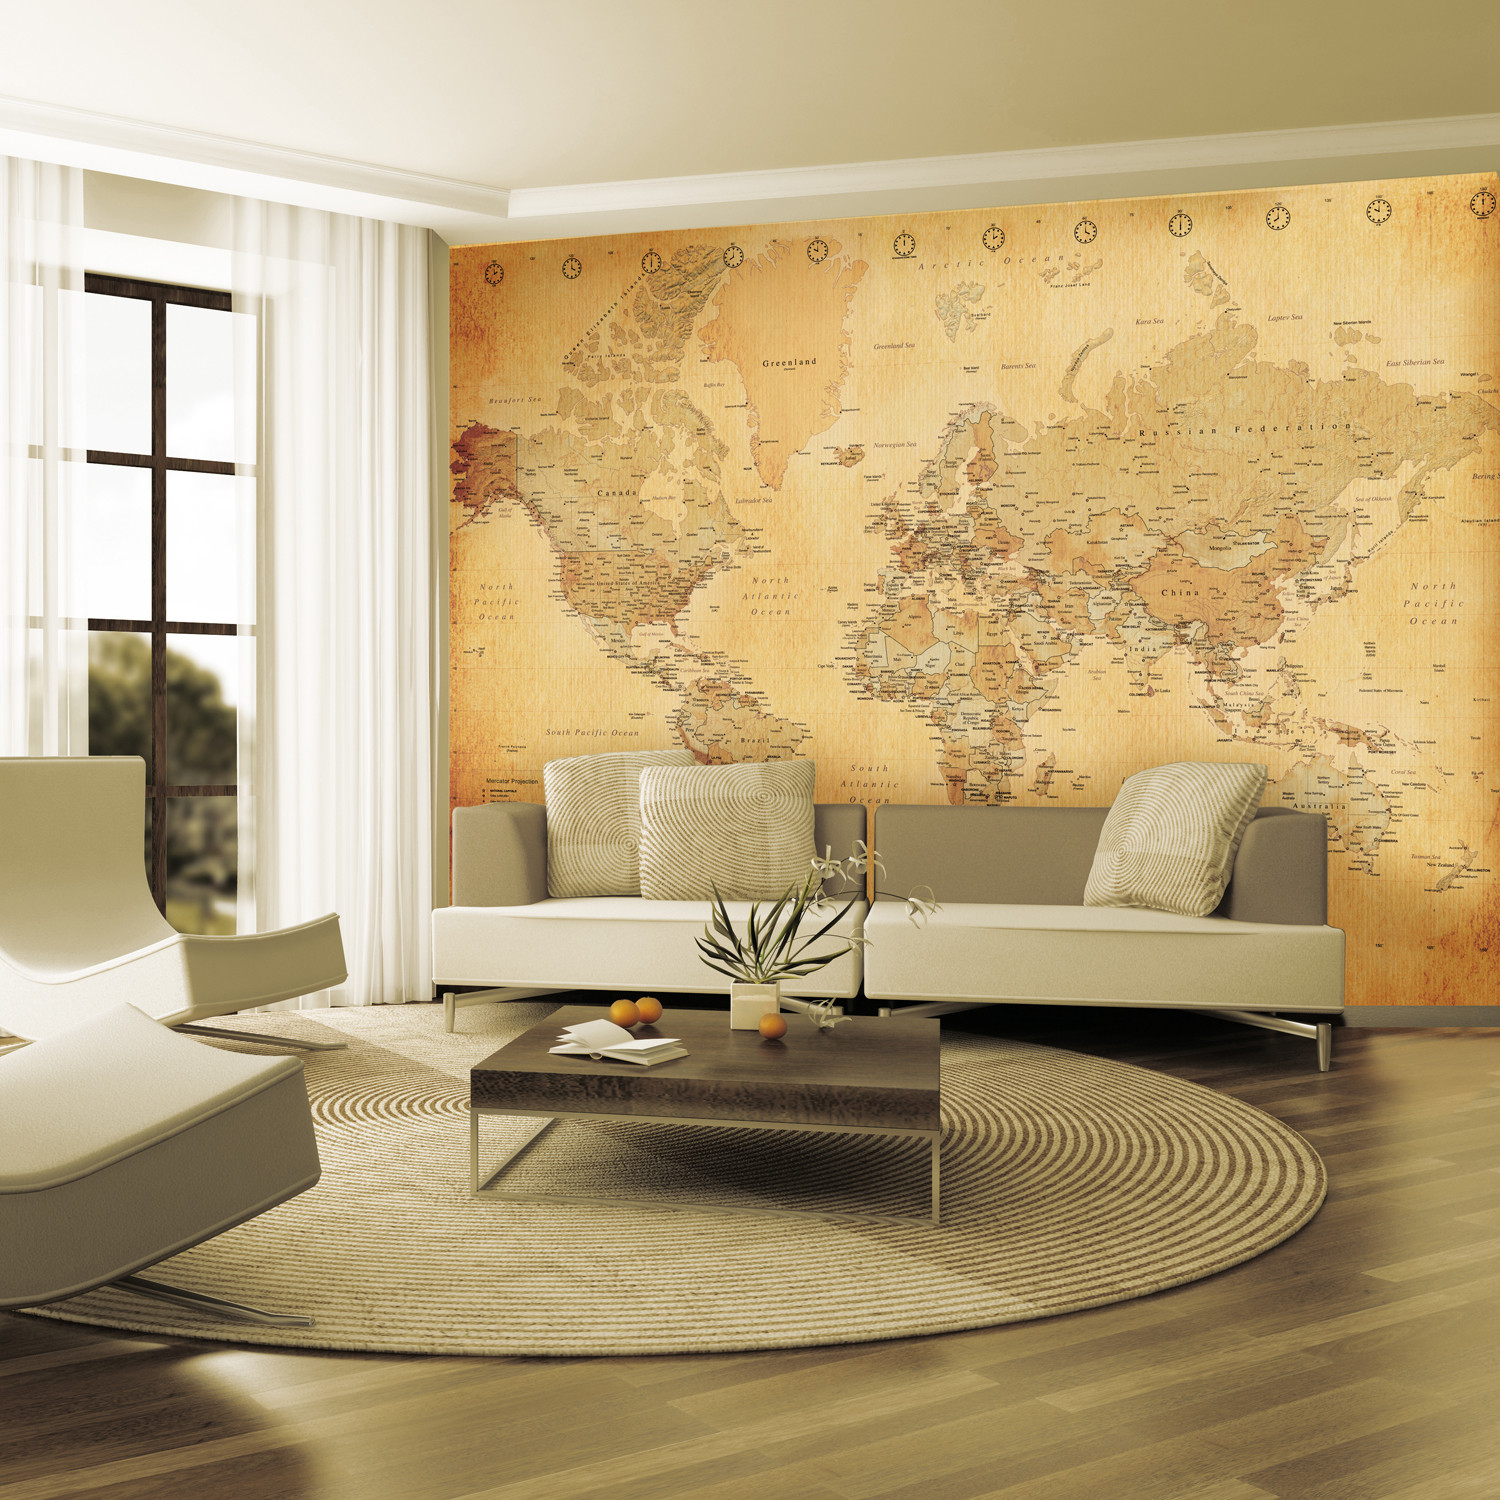 vintage world map 1 wall murals touch of modern. Black Bedroom Furniture Sets. Home Design Ideas